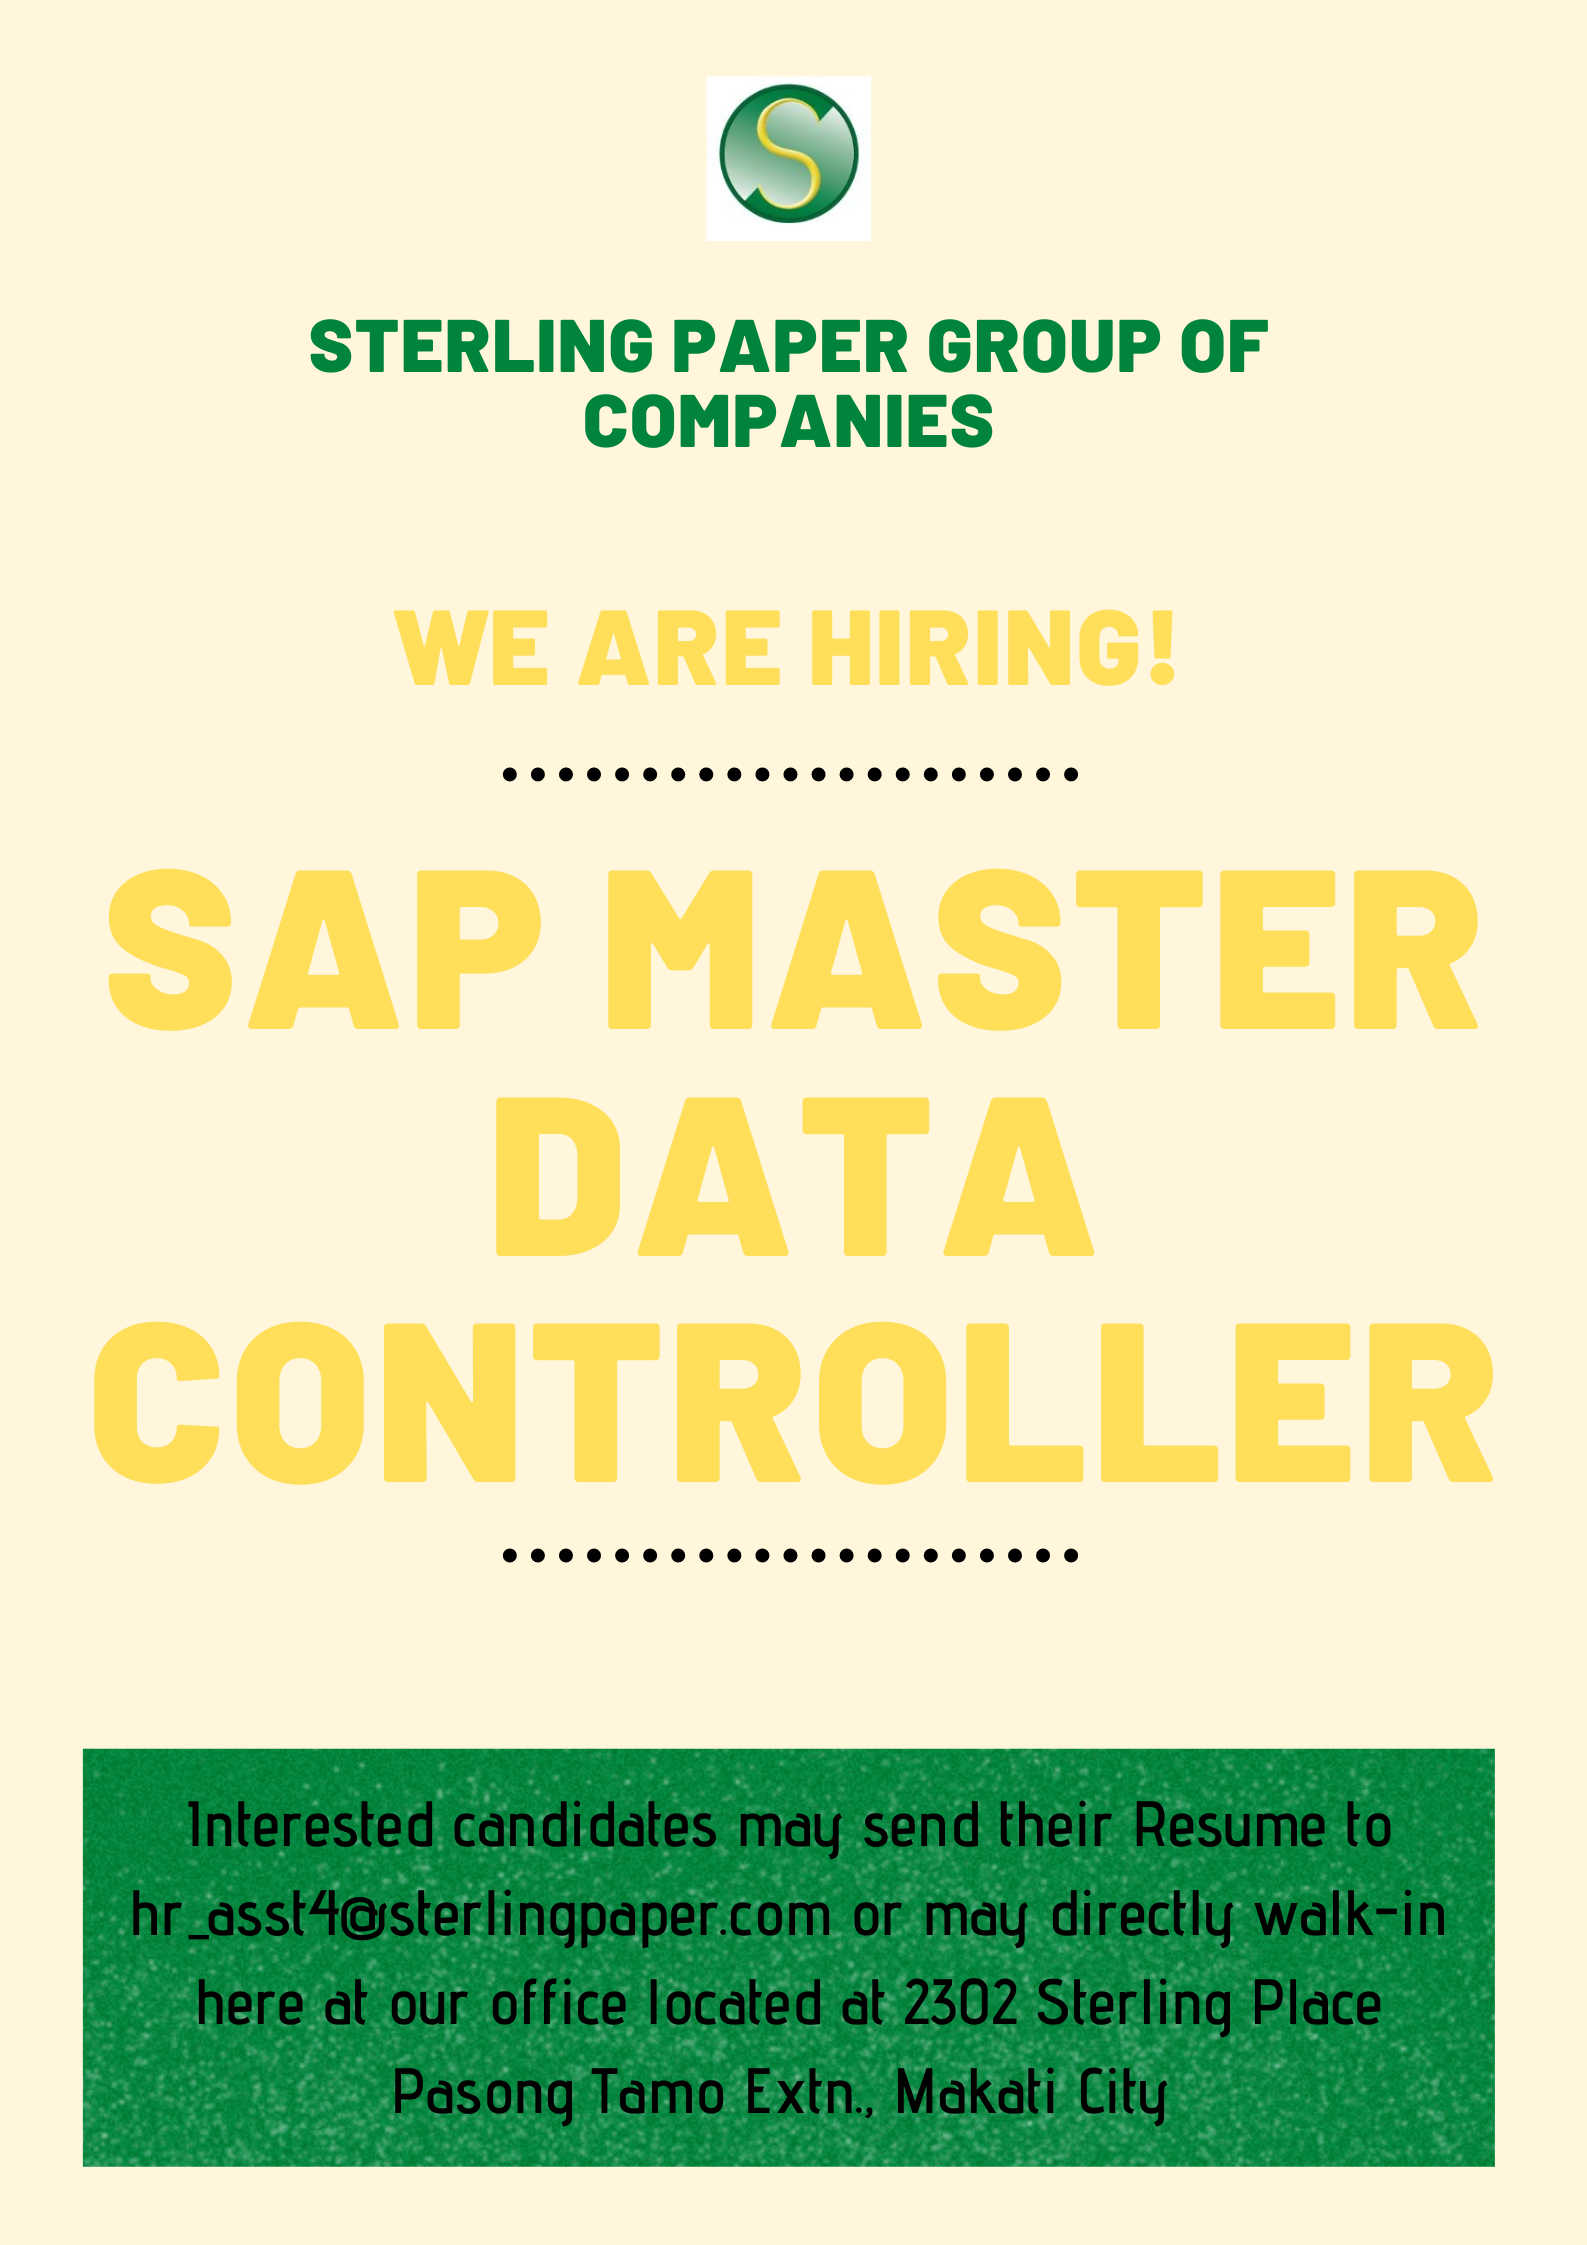 Sap Master Data Controller from STERLING PAPER GROUP OF COM...